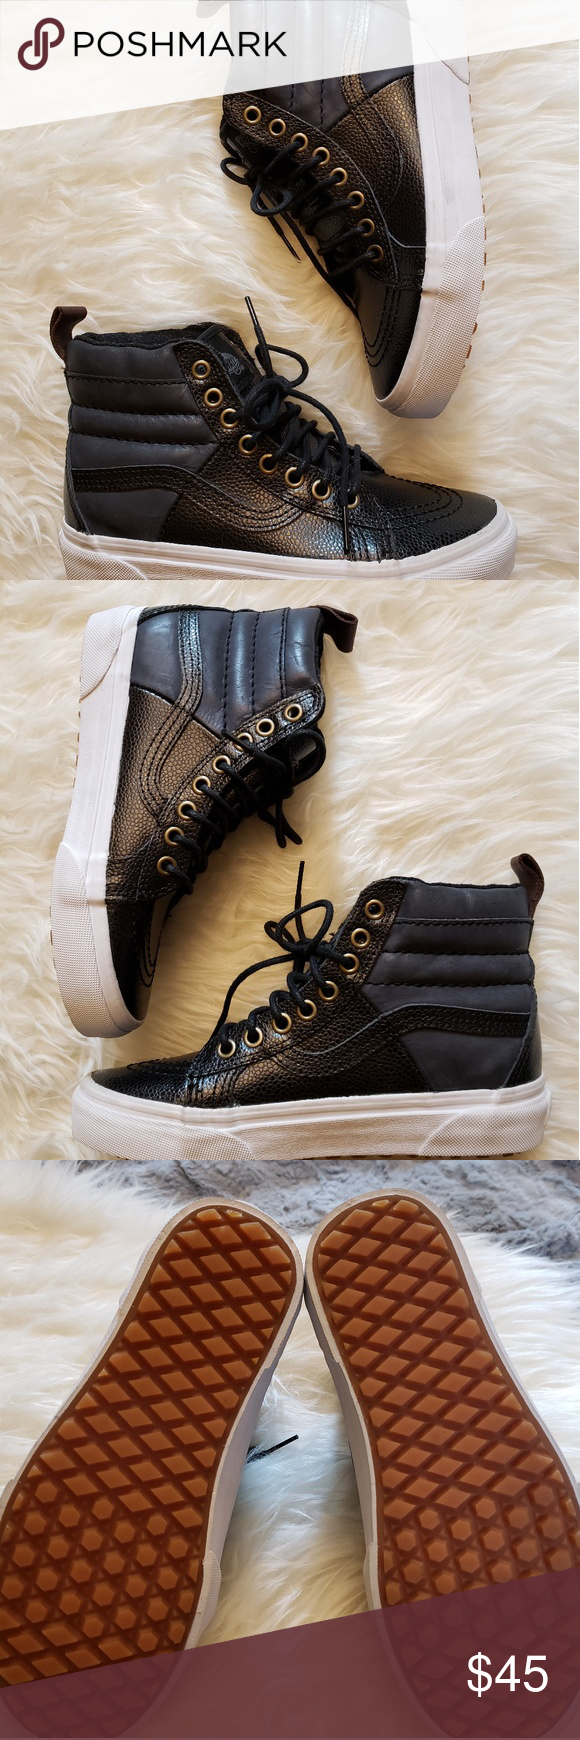 684599b93e Vans Sk8-Hi MTE Black Pebble Leather W 5.5 M4 Vans Sk8-Hi MTE in black  pebble leather. Size men s boys 4 or women s 5.5. New without tags or box.